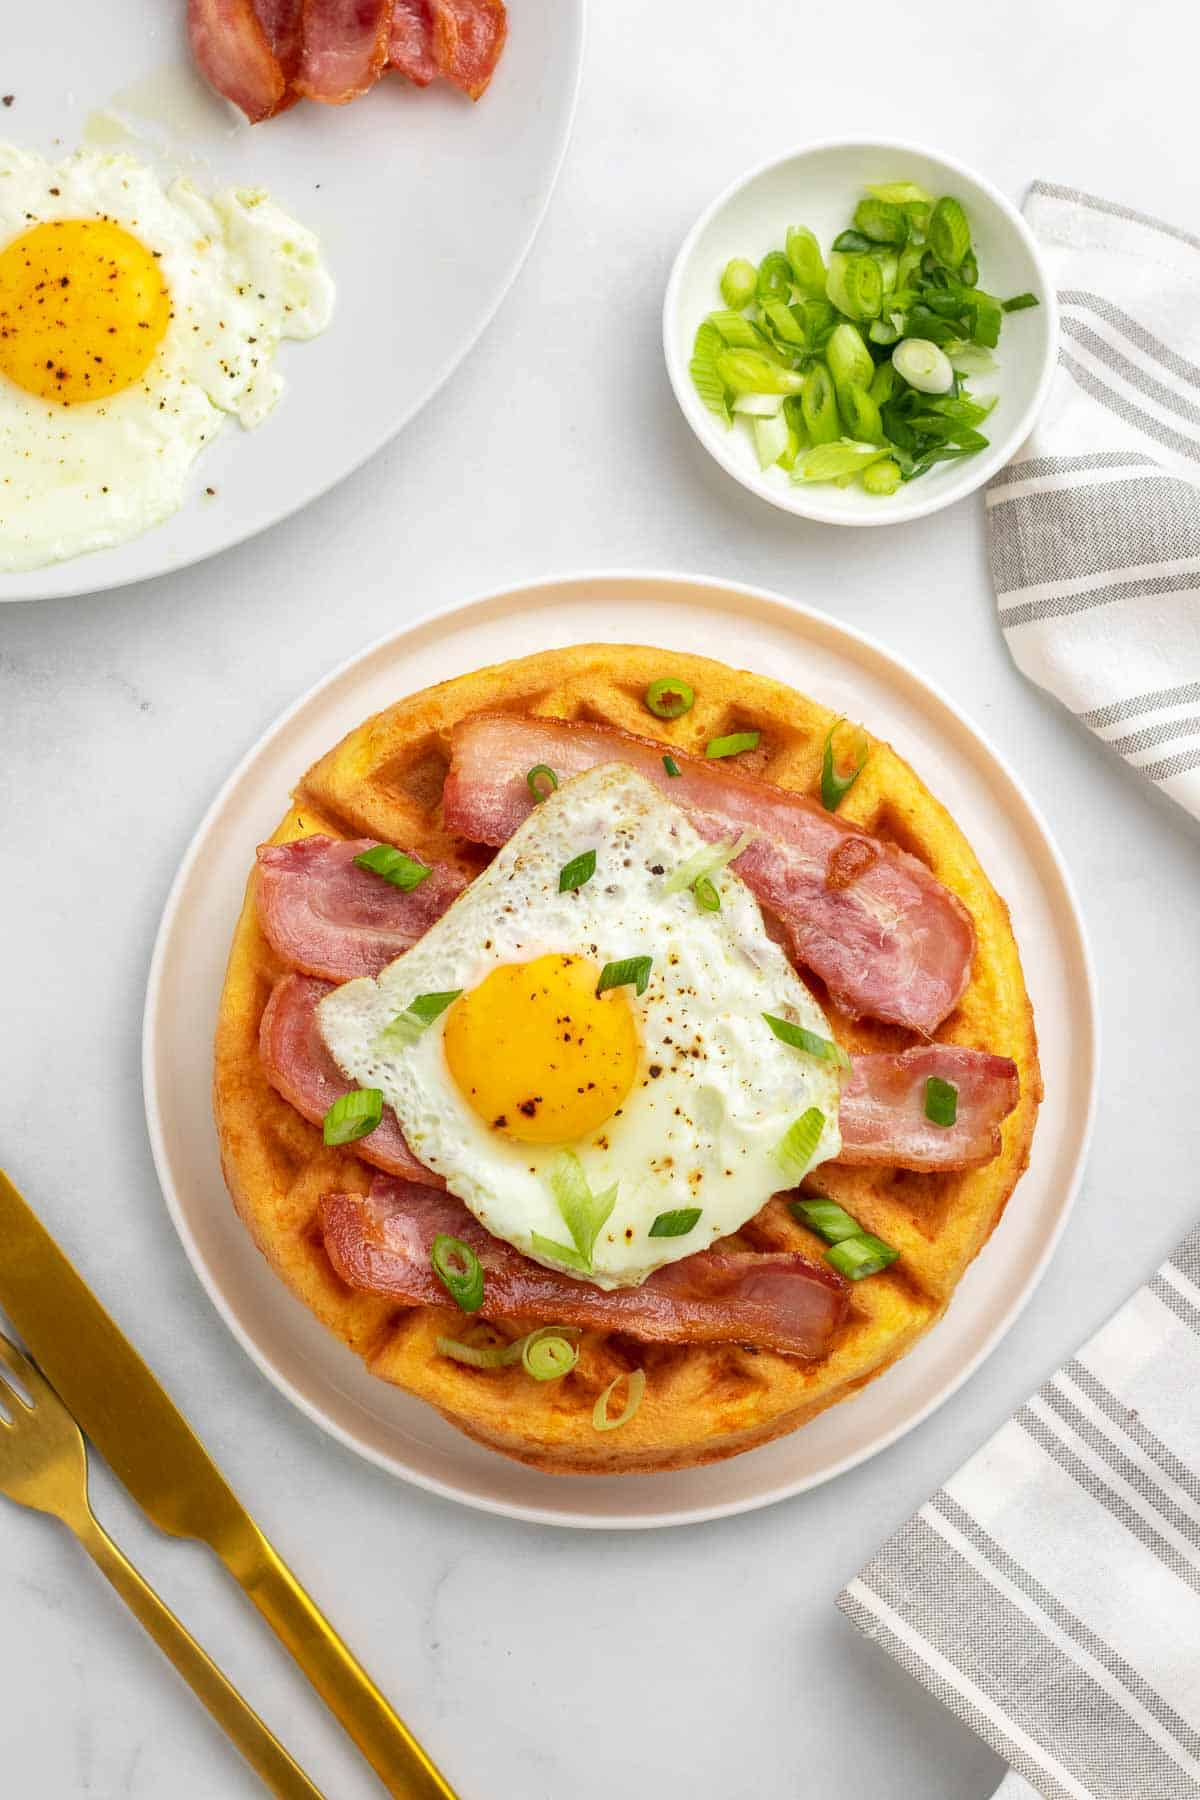 Chaffled topped with bacon, a fried egg, and scallions